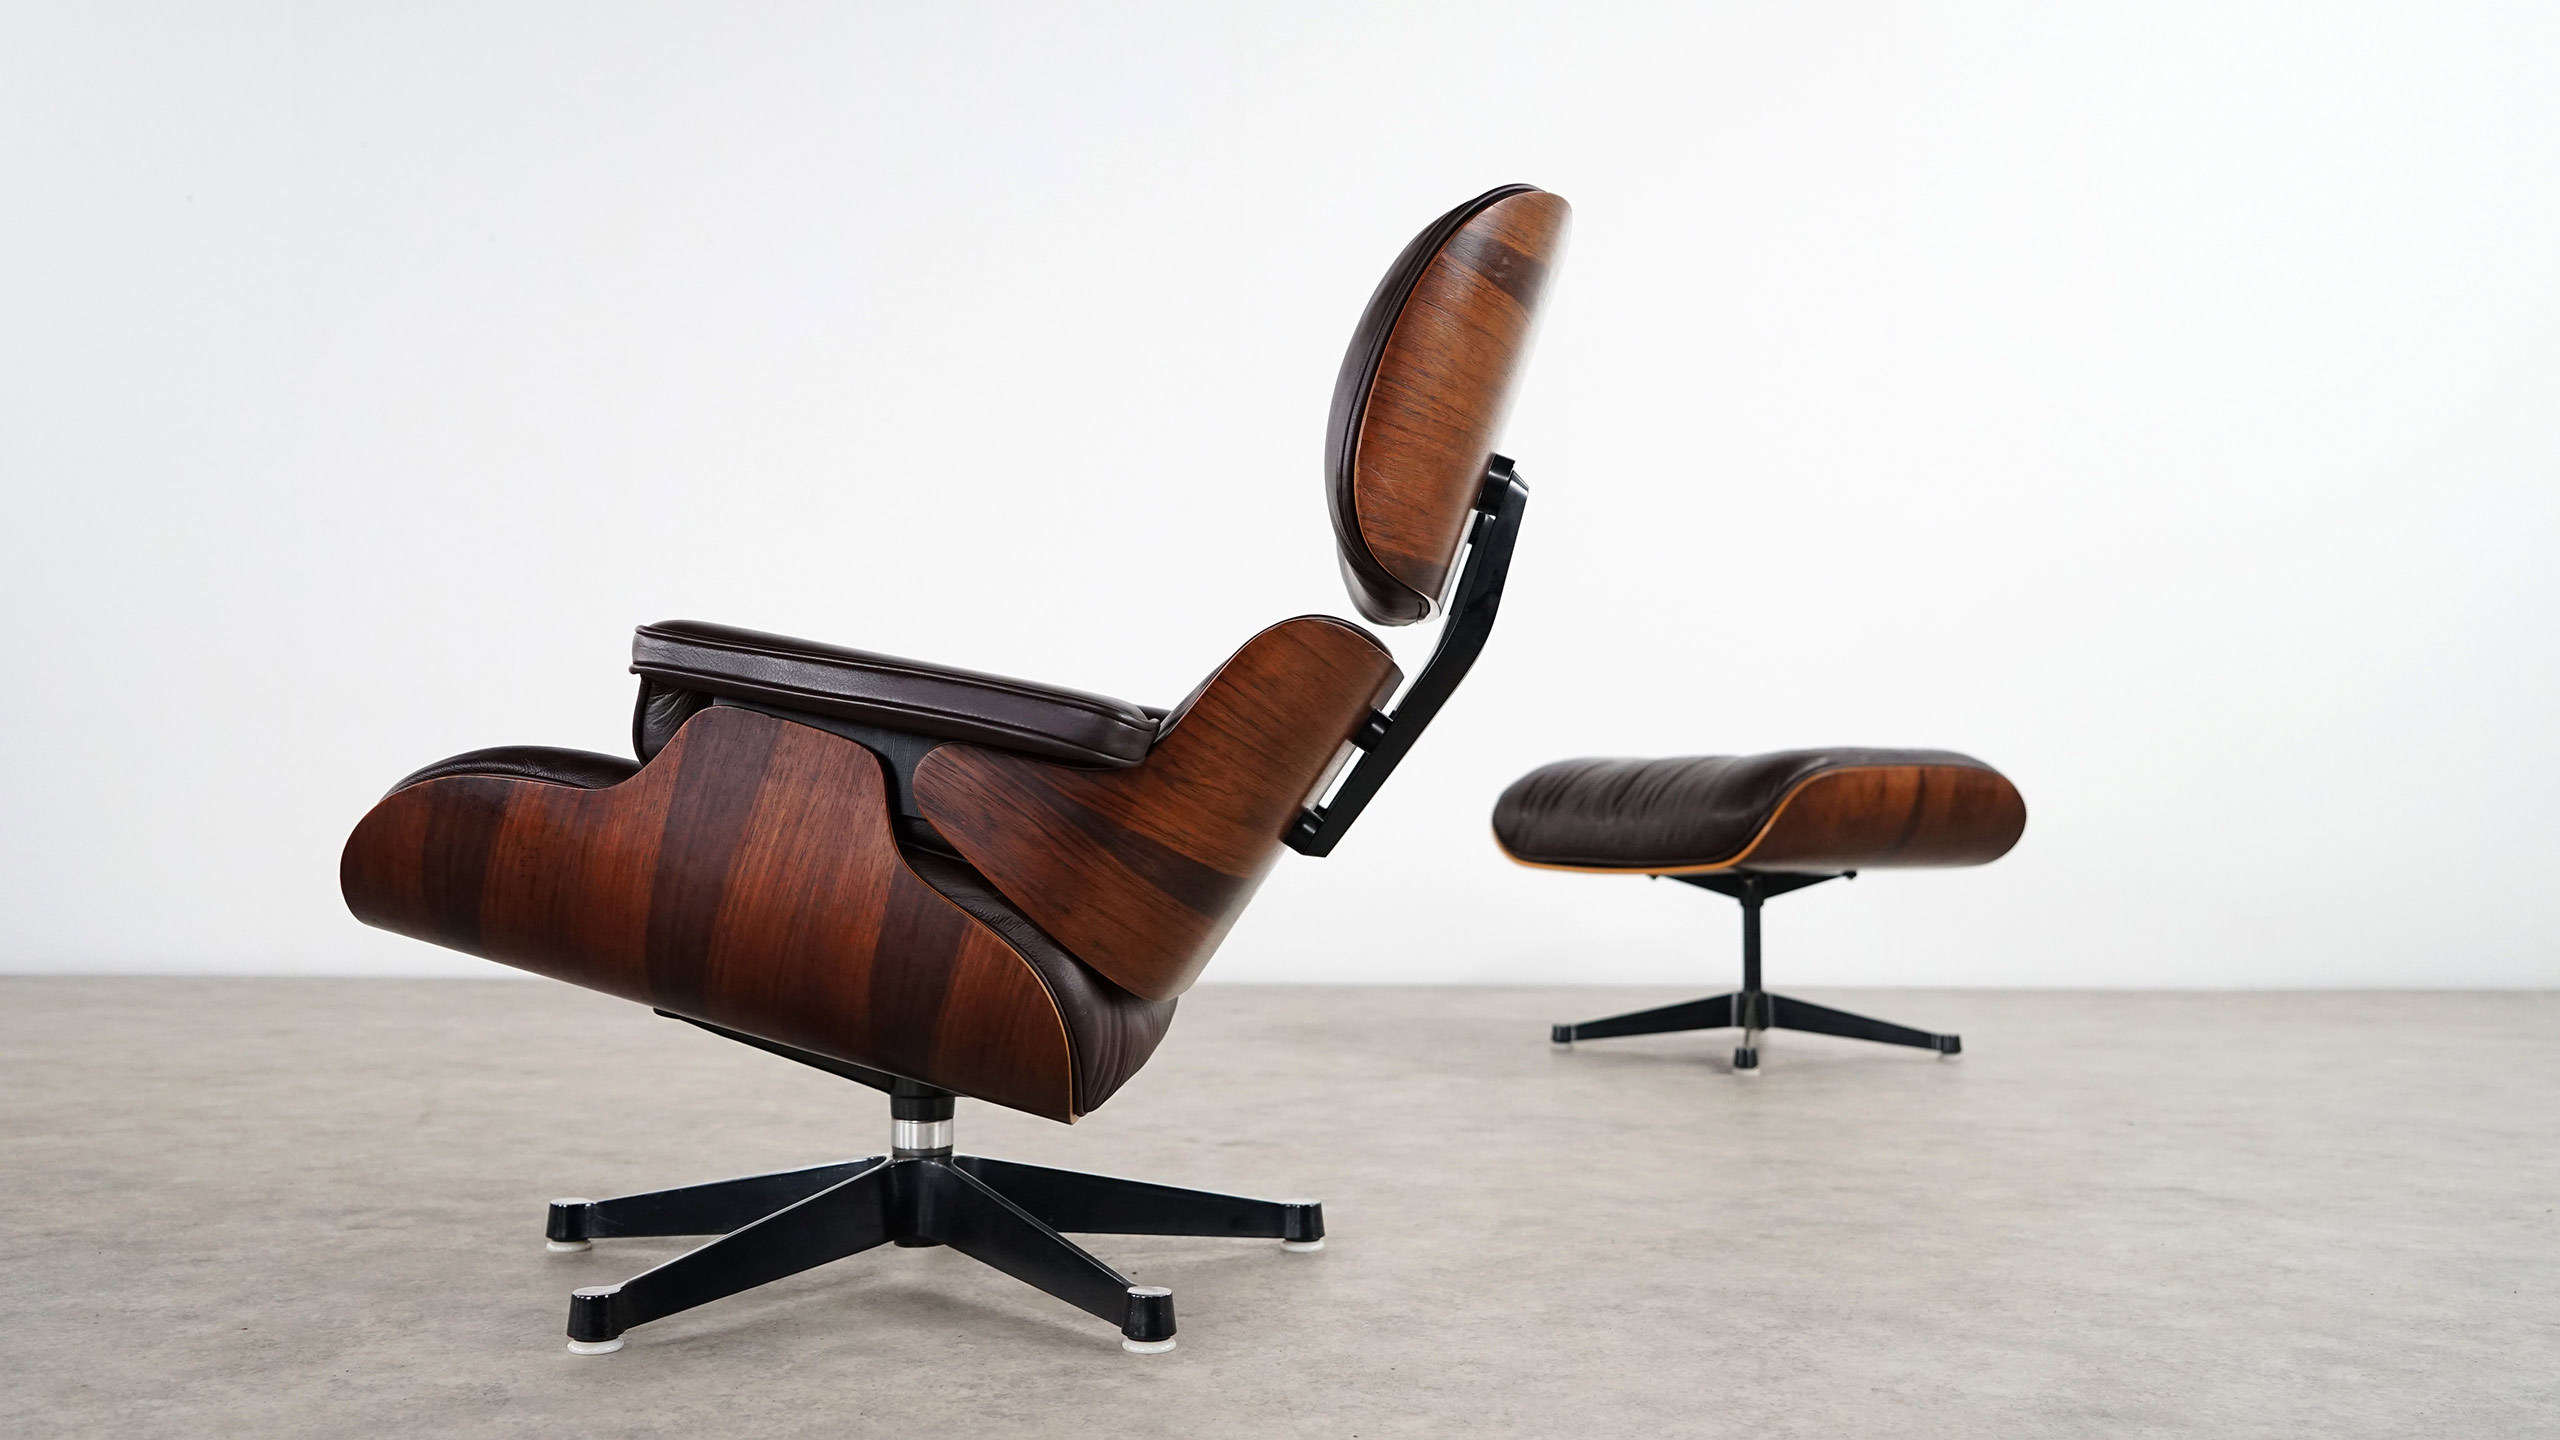 Charles Eames Charles Eames Lounge Chair Ottoman Herman Miller By Vitra Chocolate Leather